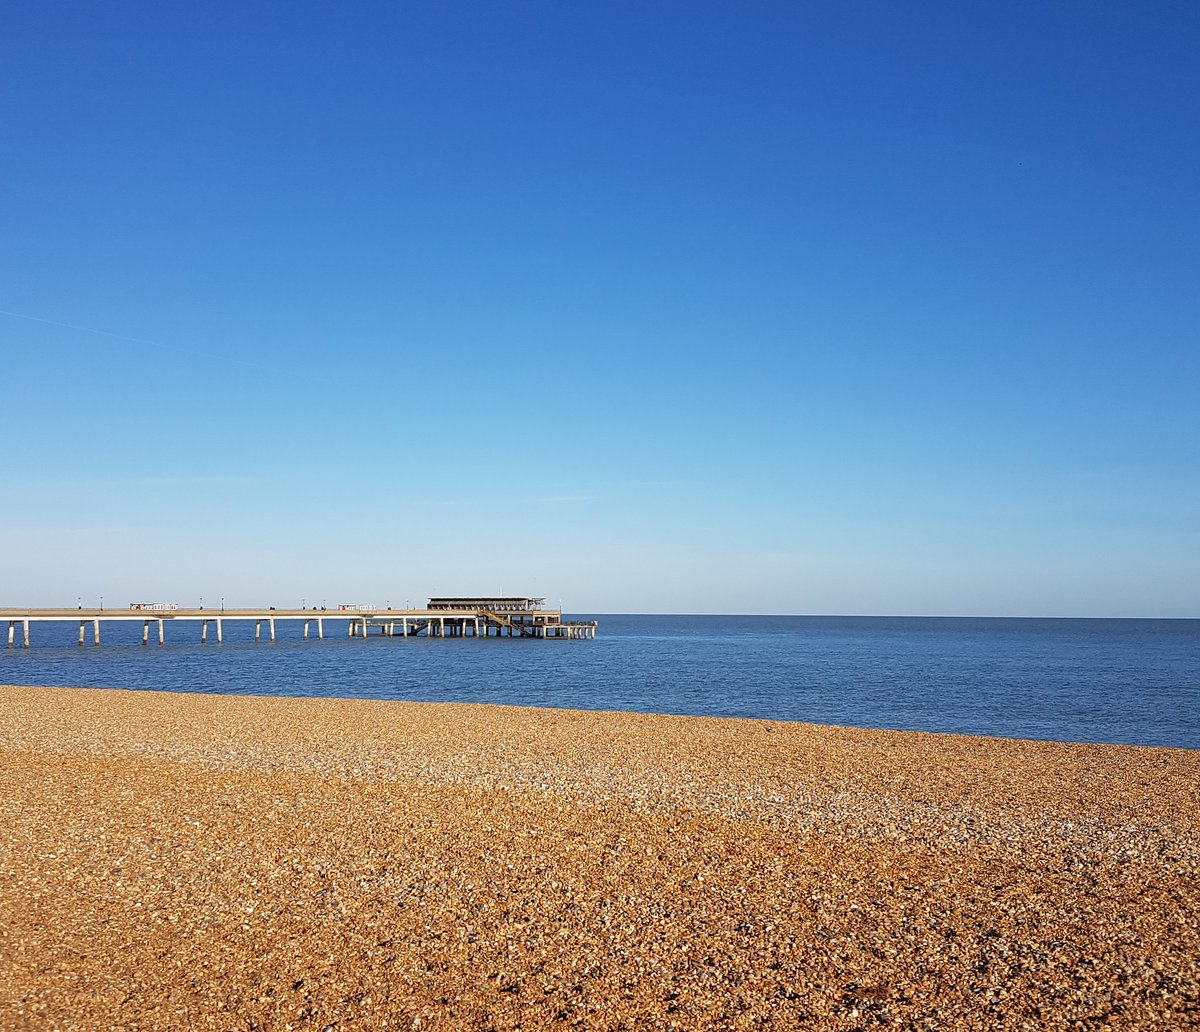 Another magnificent day on the Kentish Riviera @Deal_Town. #Beach #sea #coast @coastmag .<br>http://pic.twitter.com/8pwx0ByJxu